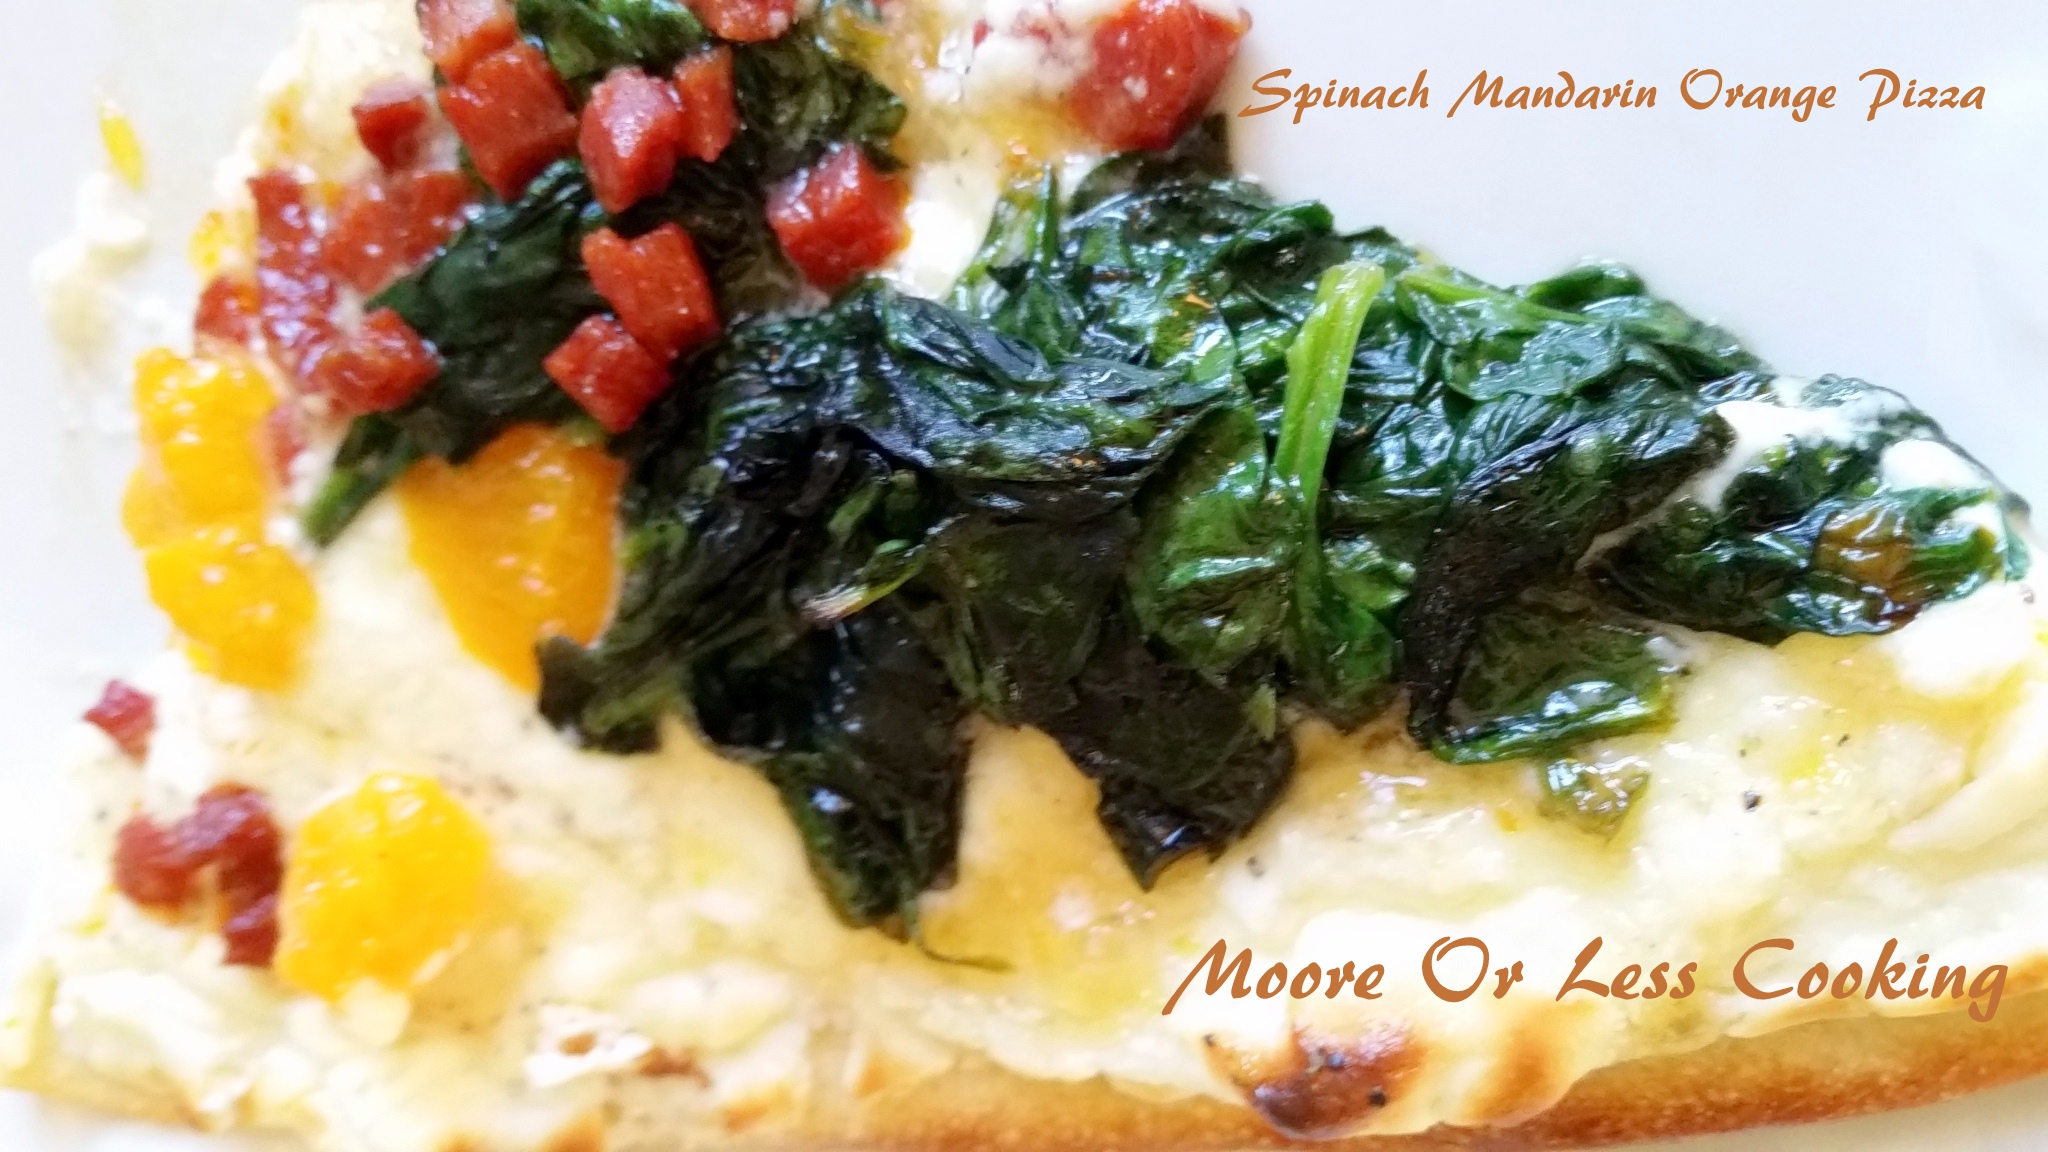 Spinach Mandarin Orange Pizza